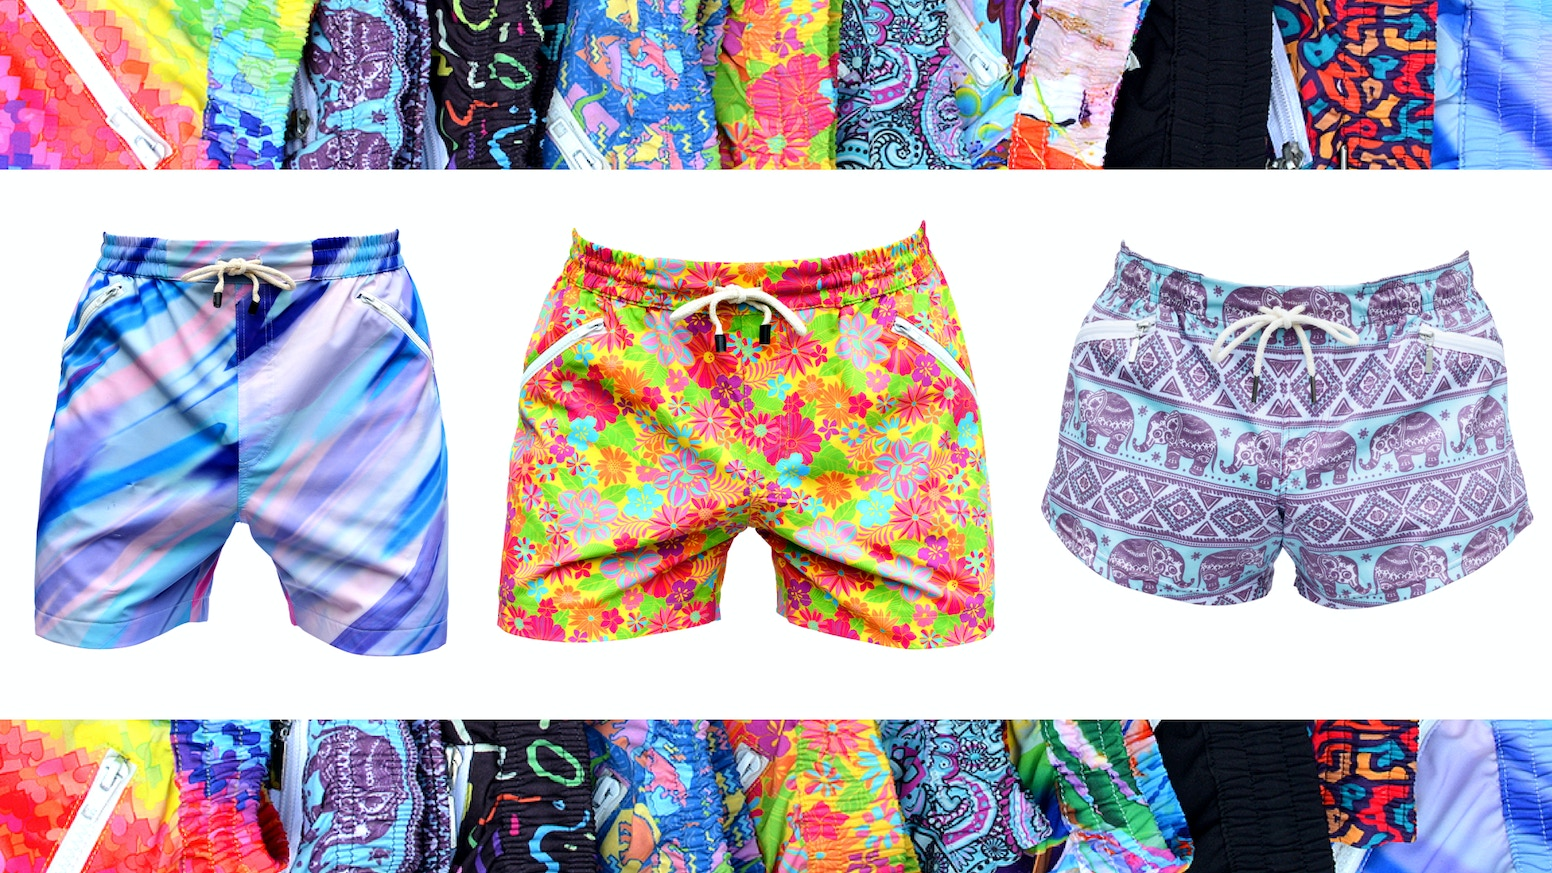 The first shorts to combine breath-taking art with the comfort of athletic shorts and the utility of fanny packs.